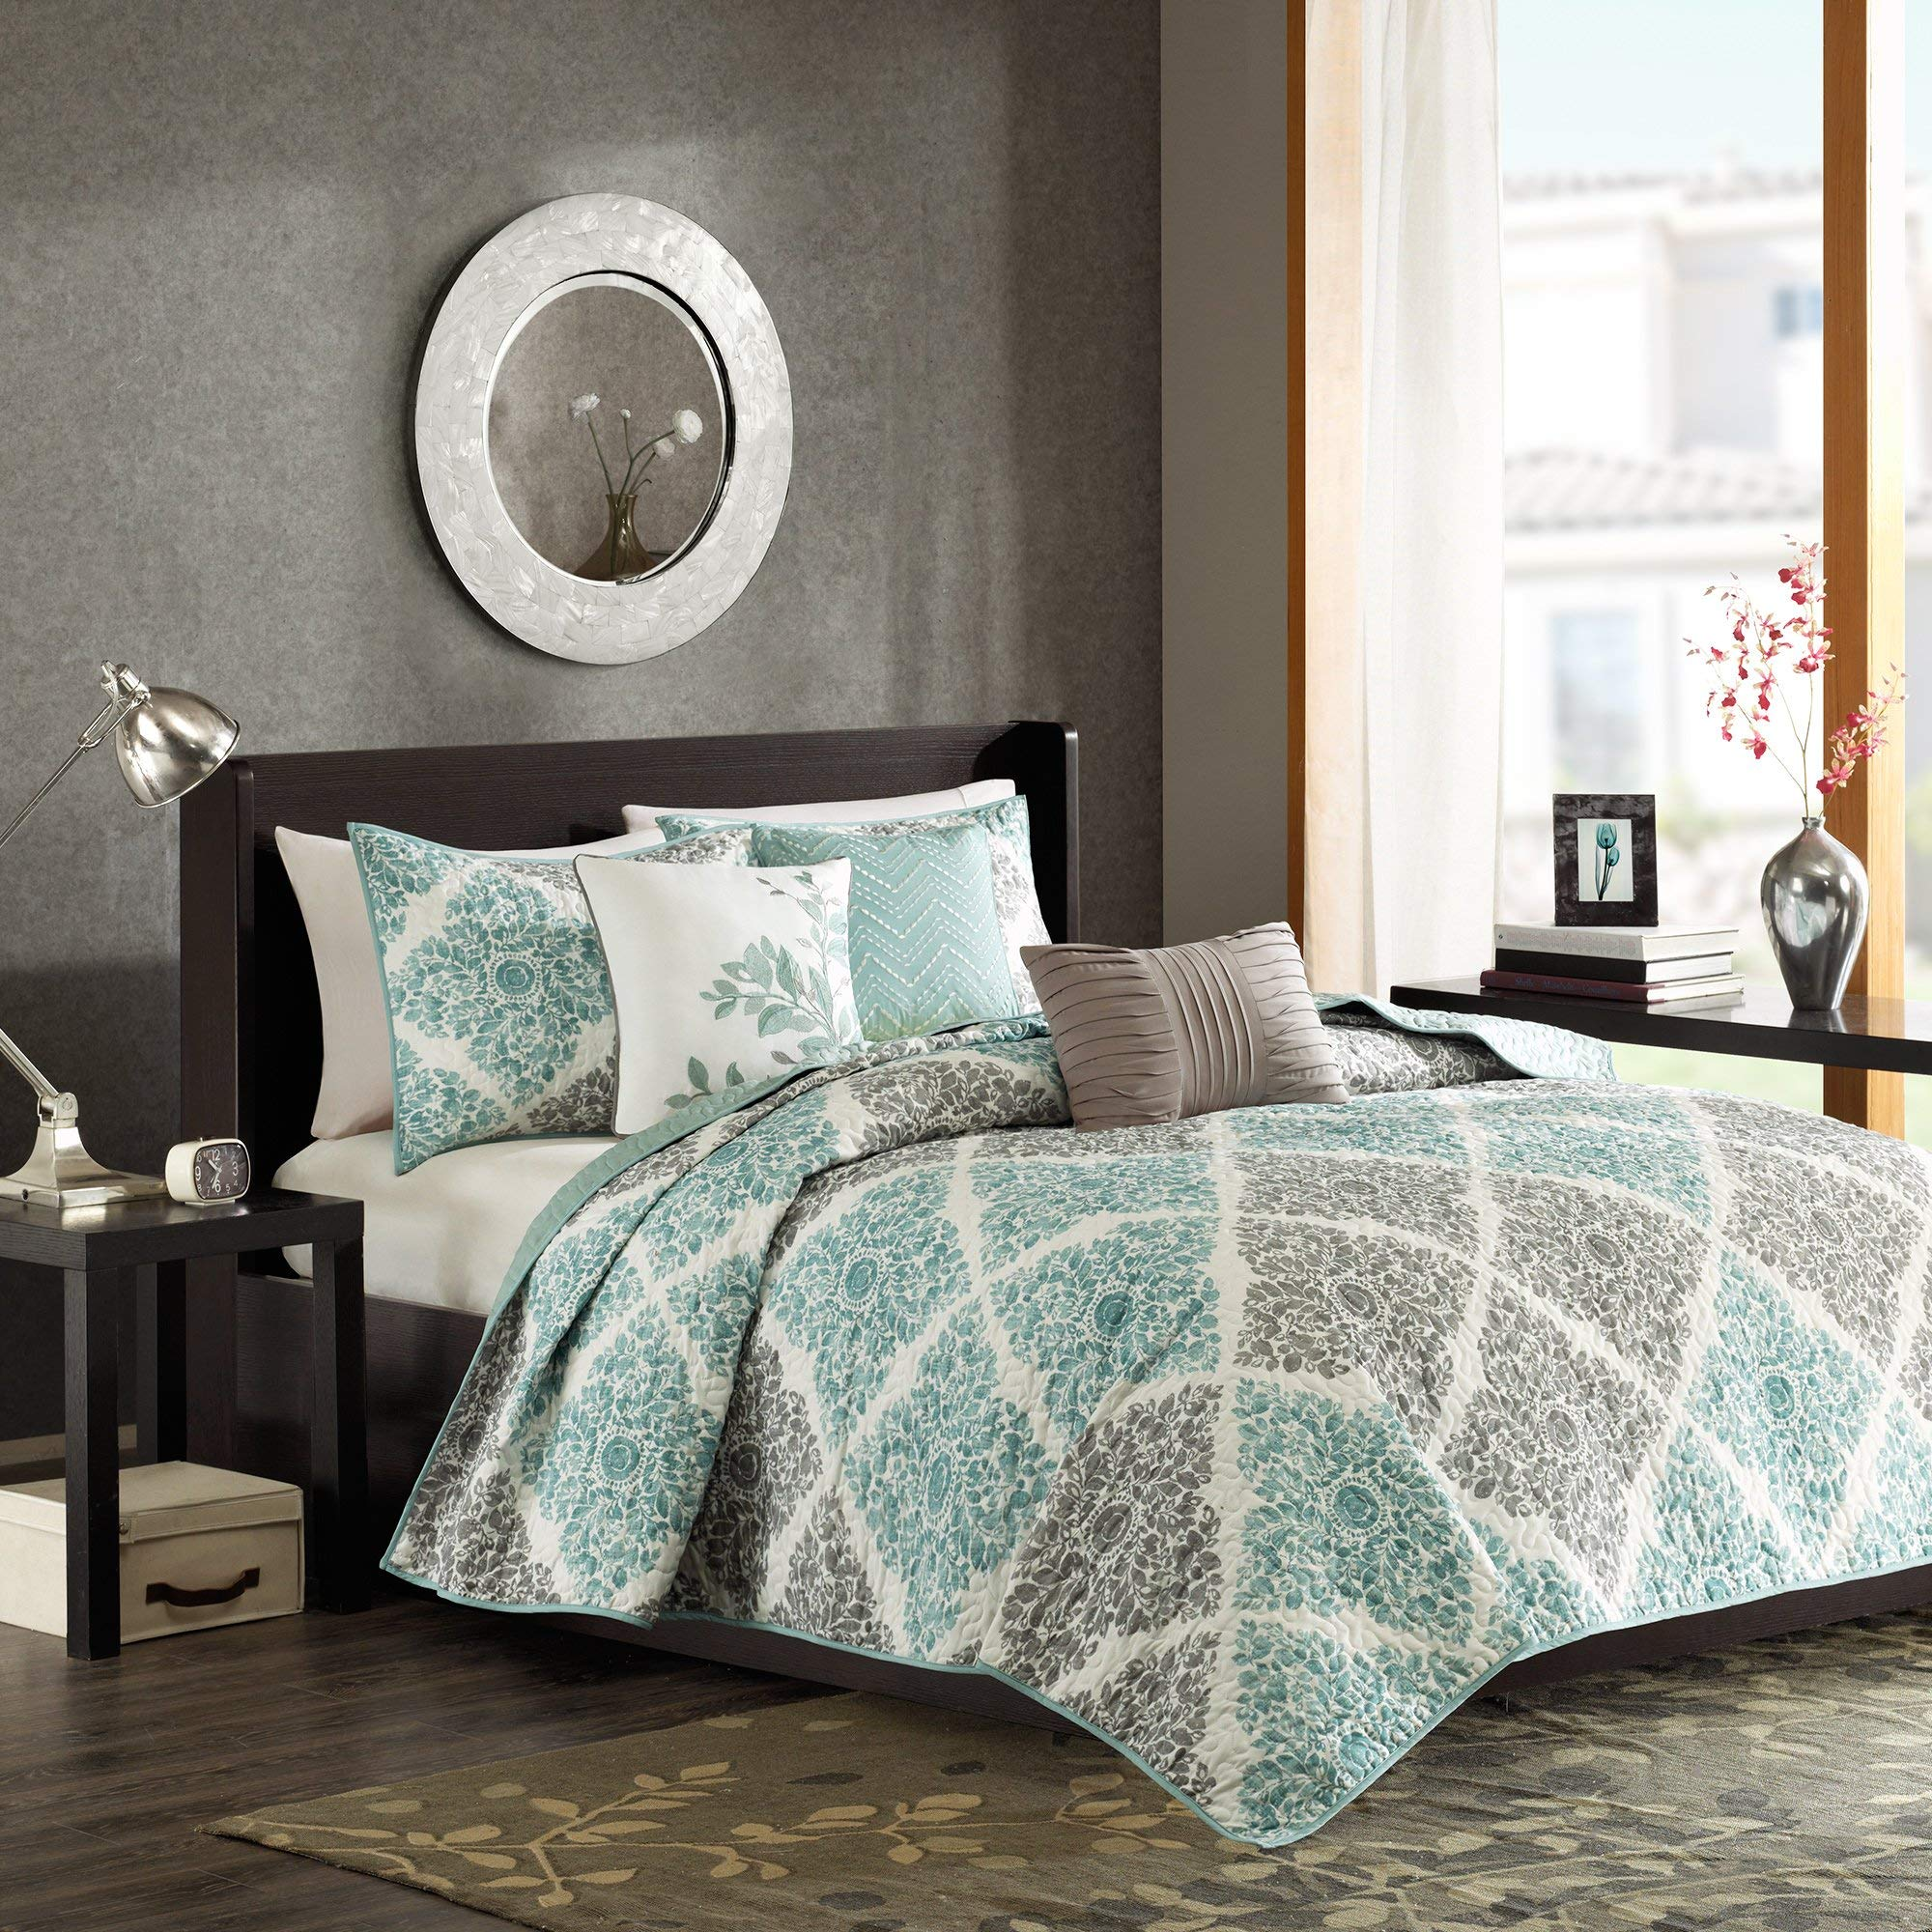 Add a personalized touch to your bedroom